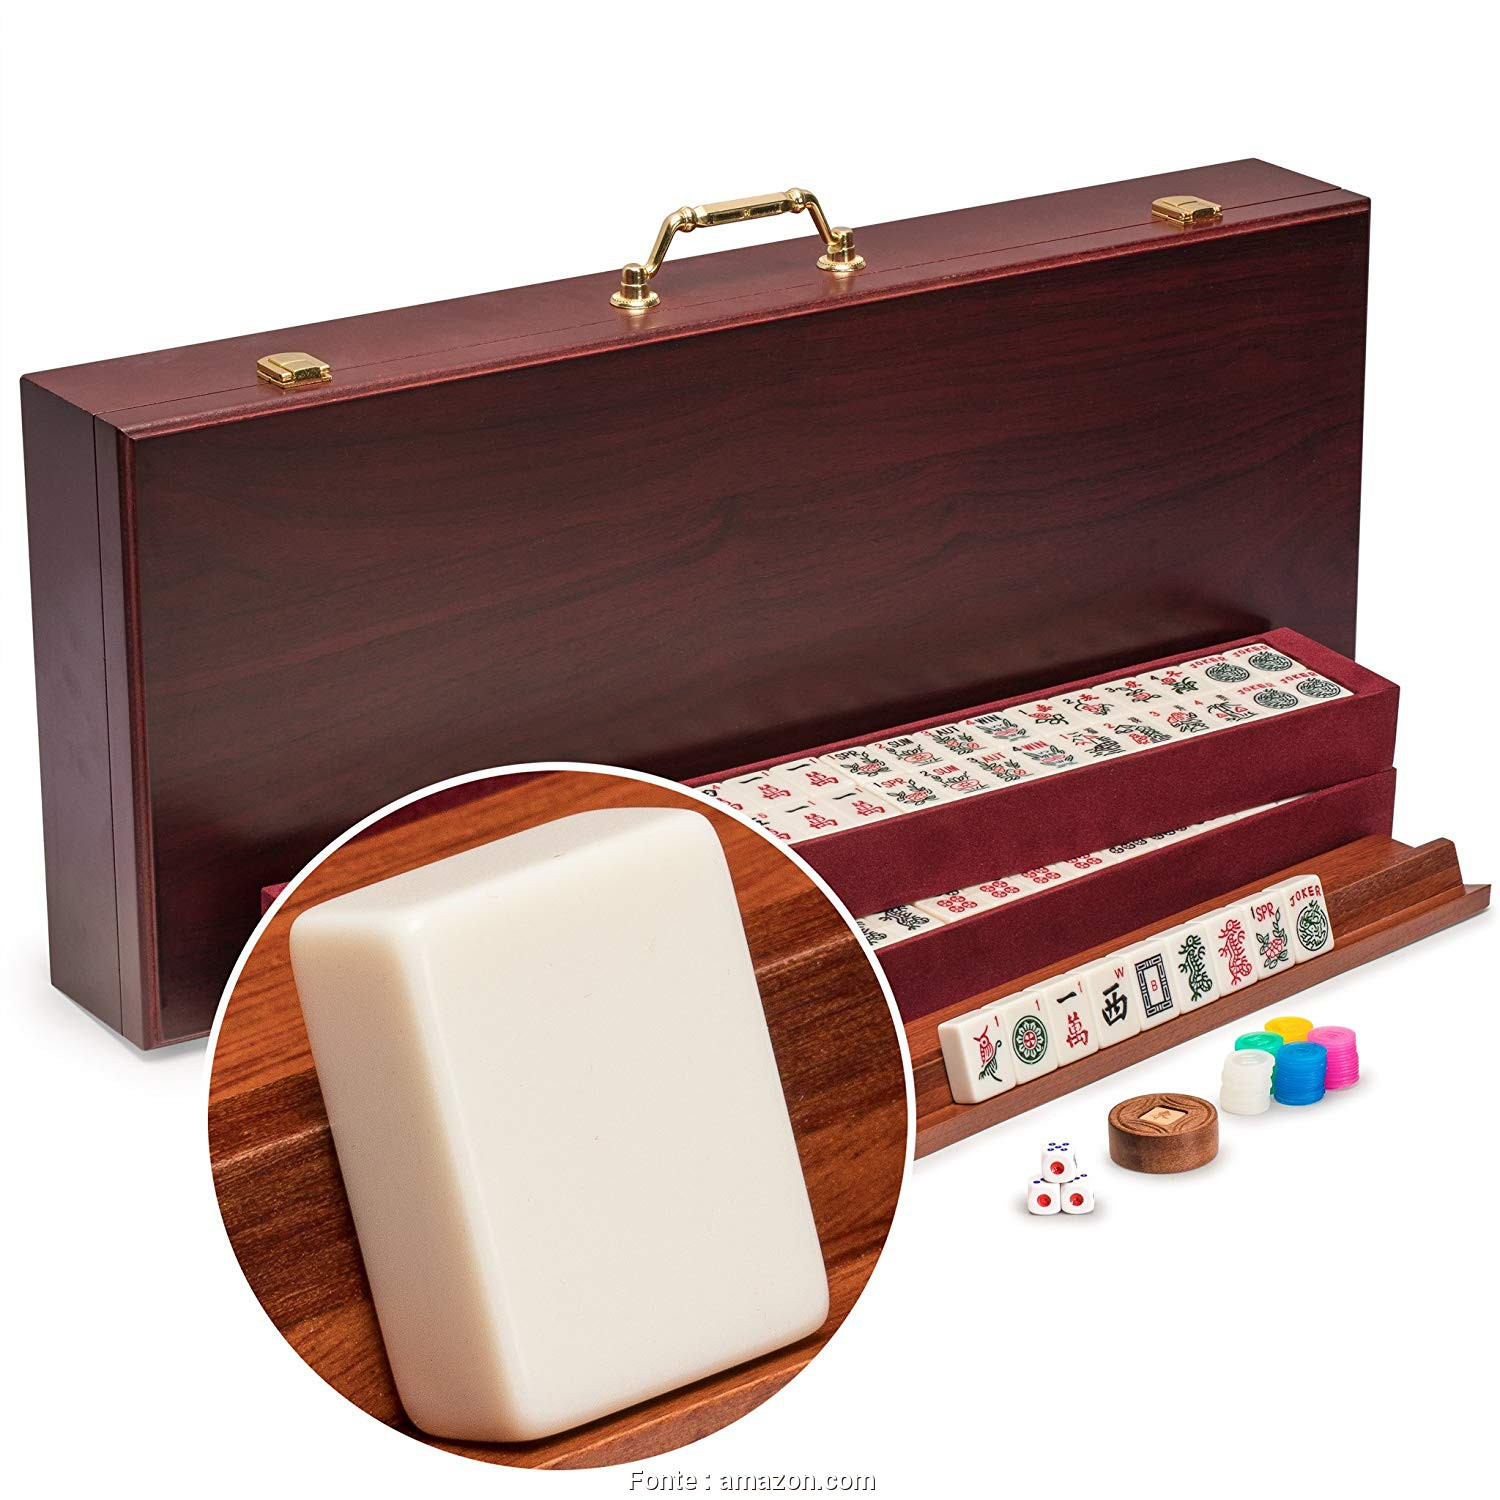 Divano, Jong Amazon, Bello Yellow Mountain Imports American Mahjong Set,, Classic, Vintage Rosewood Veneer Case, Wooden Racks Included, 1930S Inspired Tiles Made Of